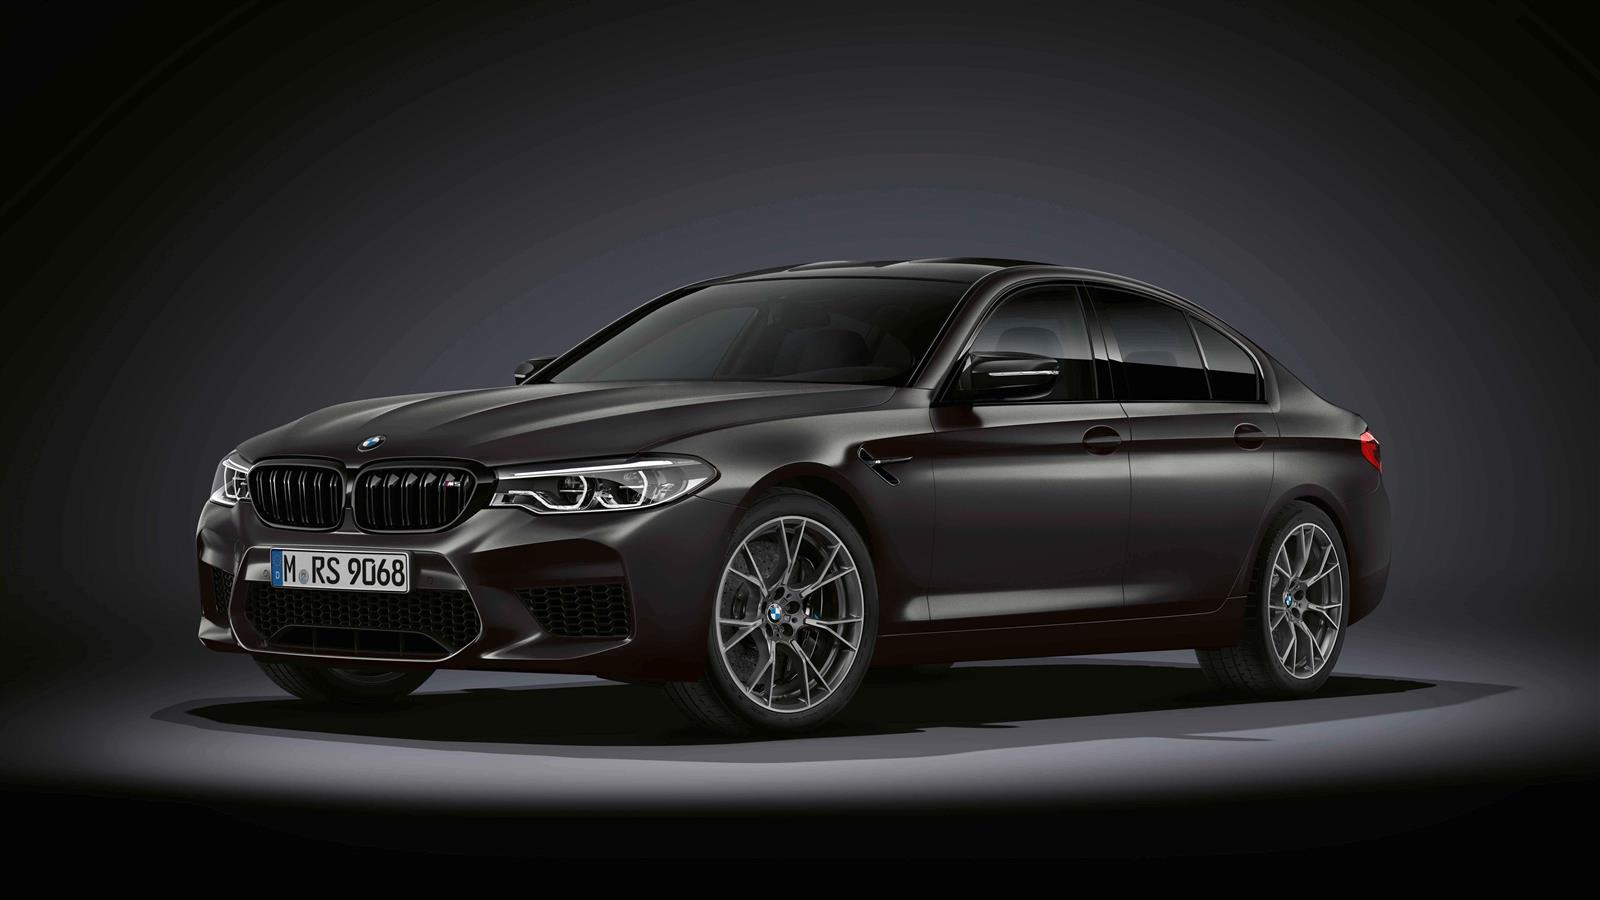 1600x900 8K Wallpaper of 2019 BMW M5 Competition Edition 35 Jahre Car